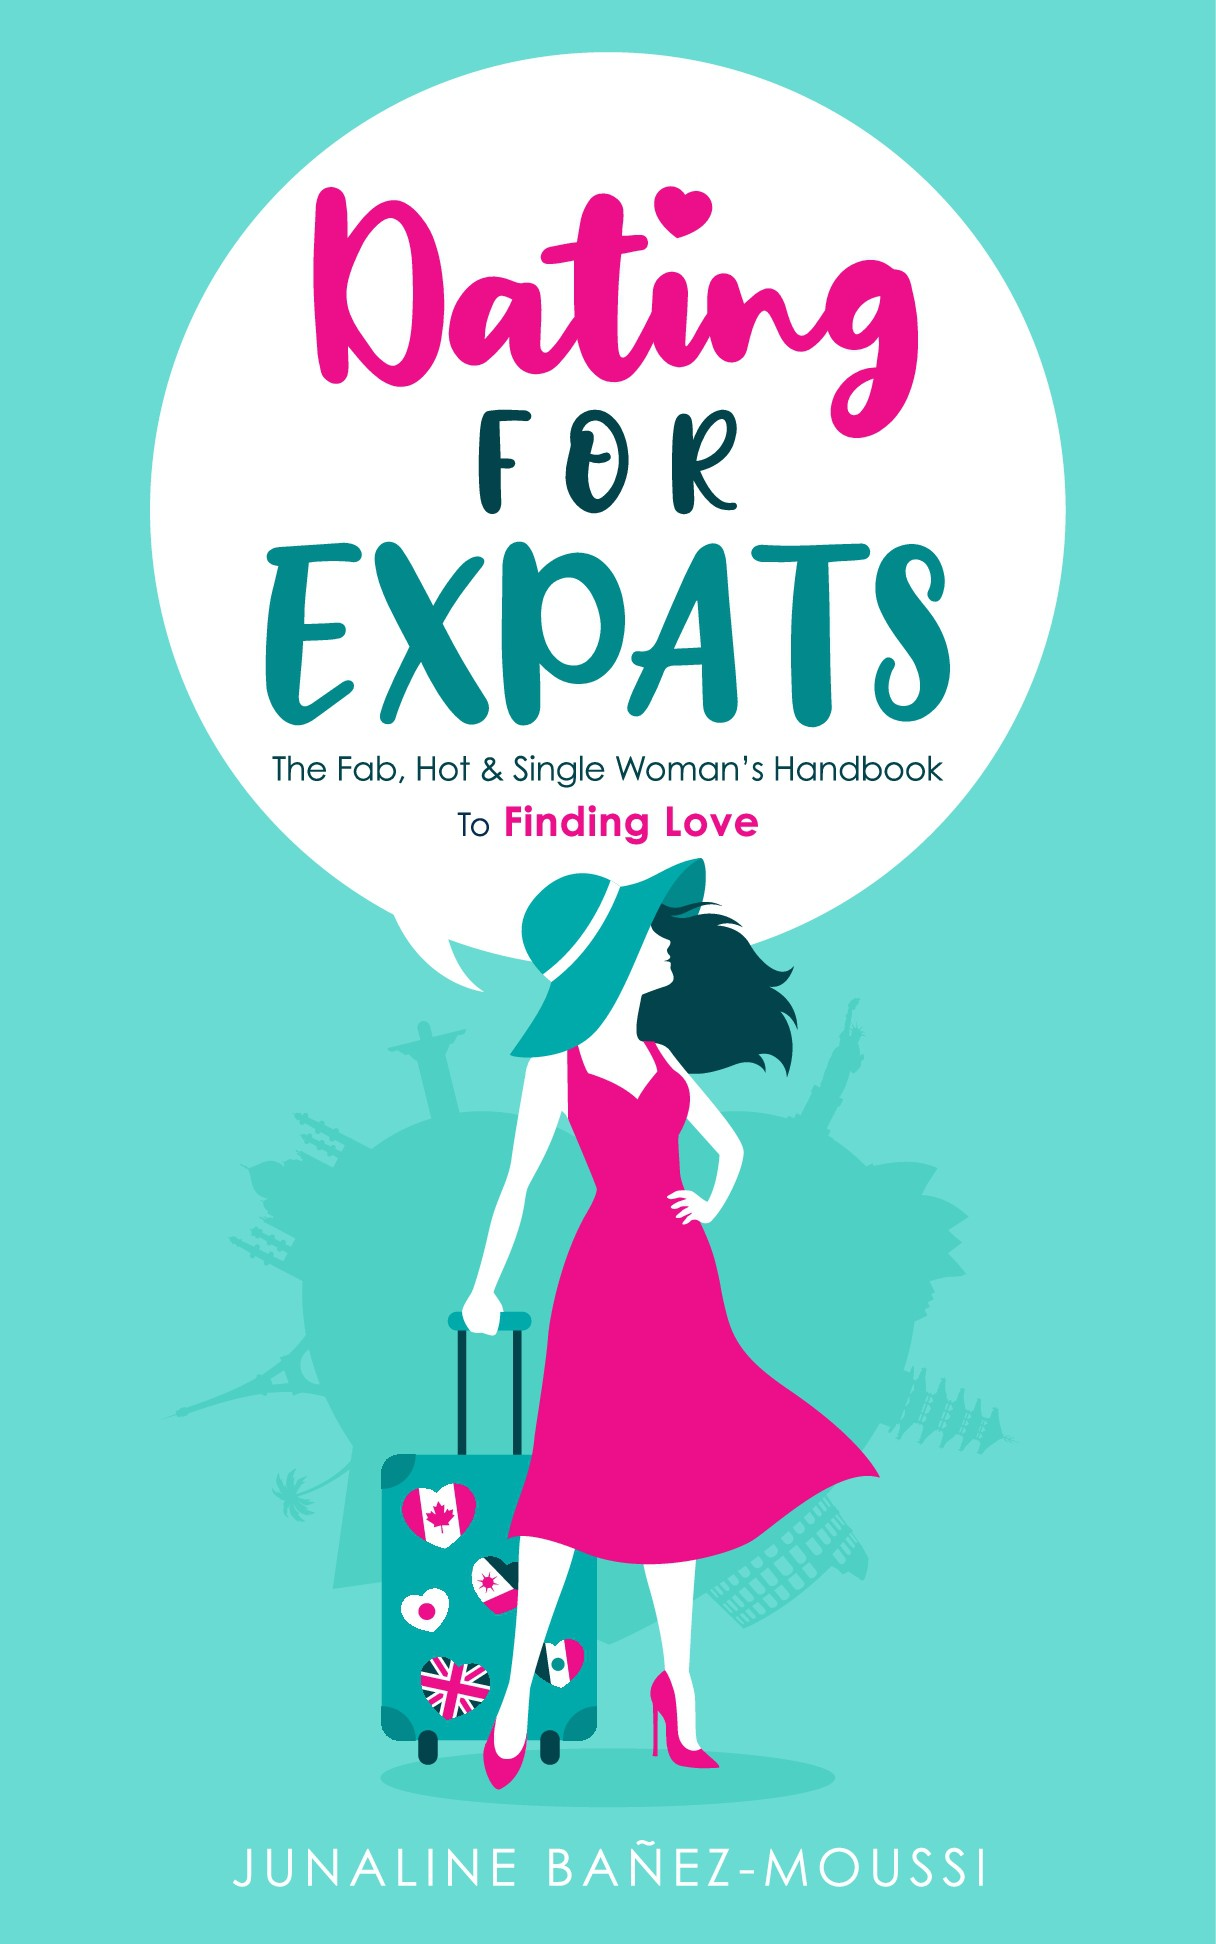 """Dating for Expats"" - The Hot, Fab and Single Woman's Handbook to Finding Love"